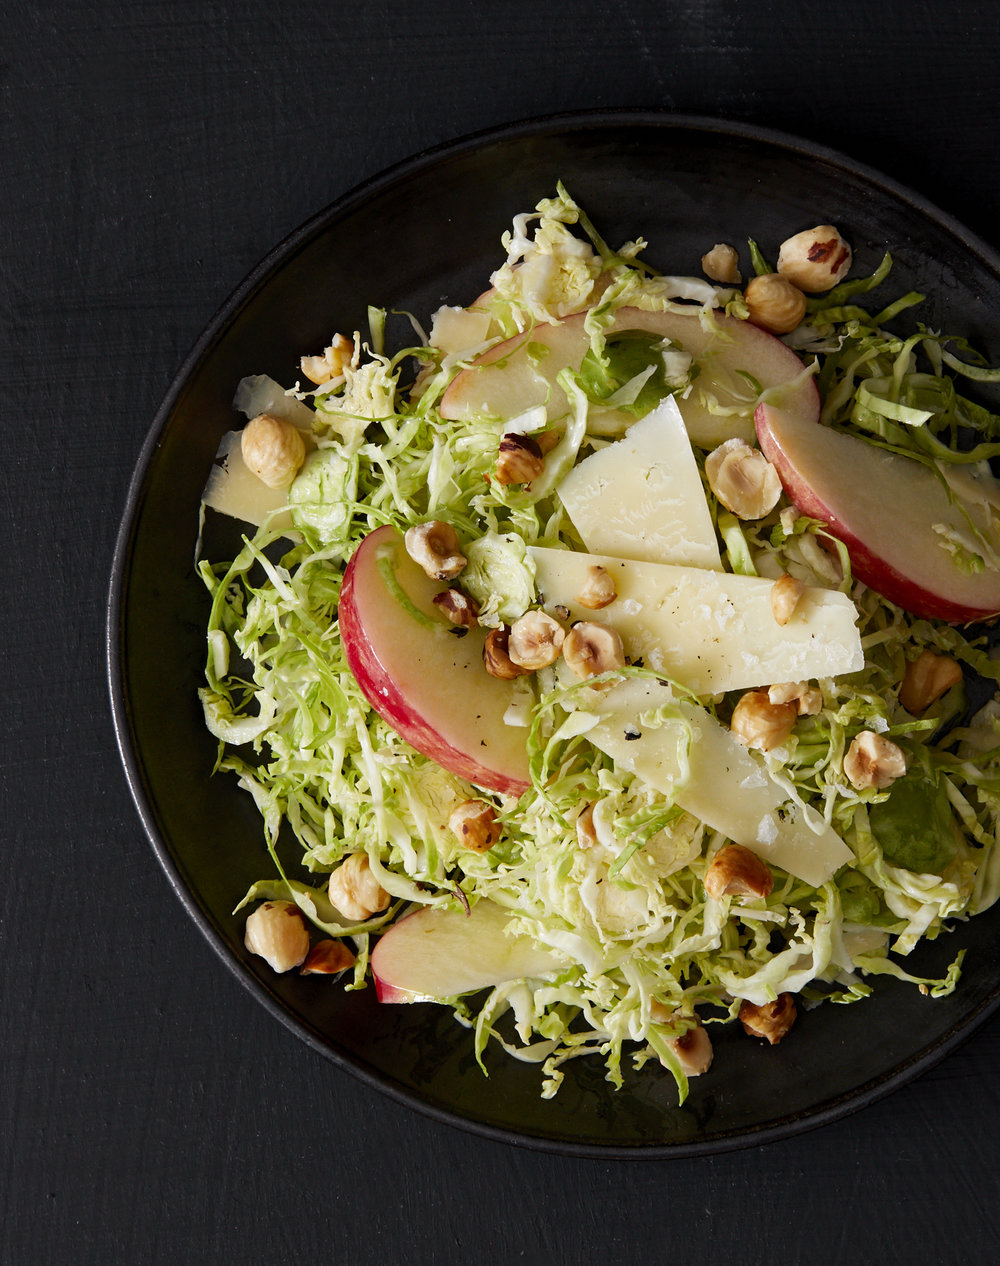 Evi-Abeler-Photography_brussels-sprouts-salad-14 crop.jpg